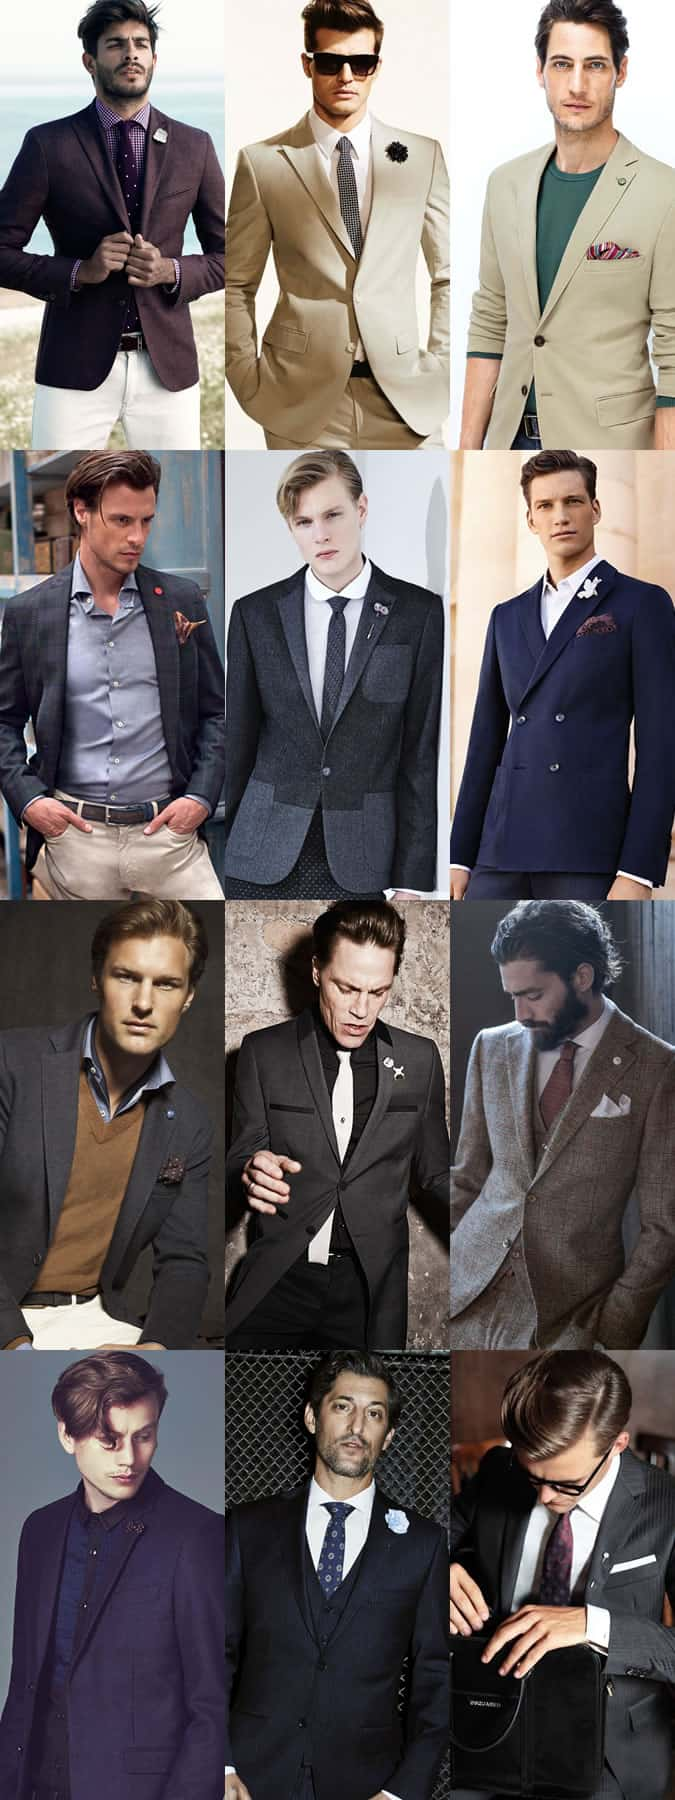 Men's Badges, Tie Pins and Lapel Pins Outfit Inspiration Lookbook